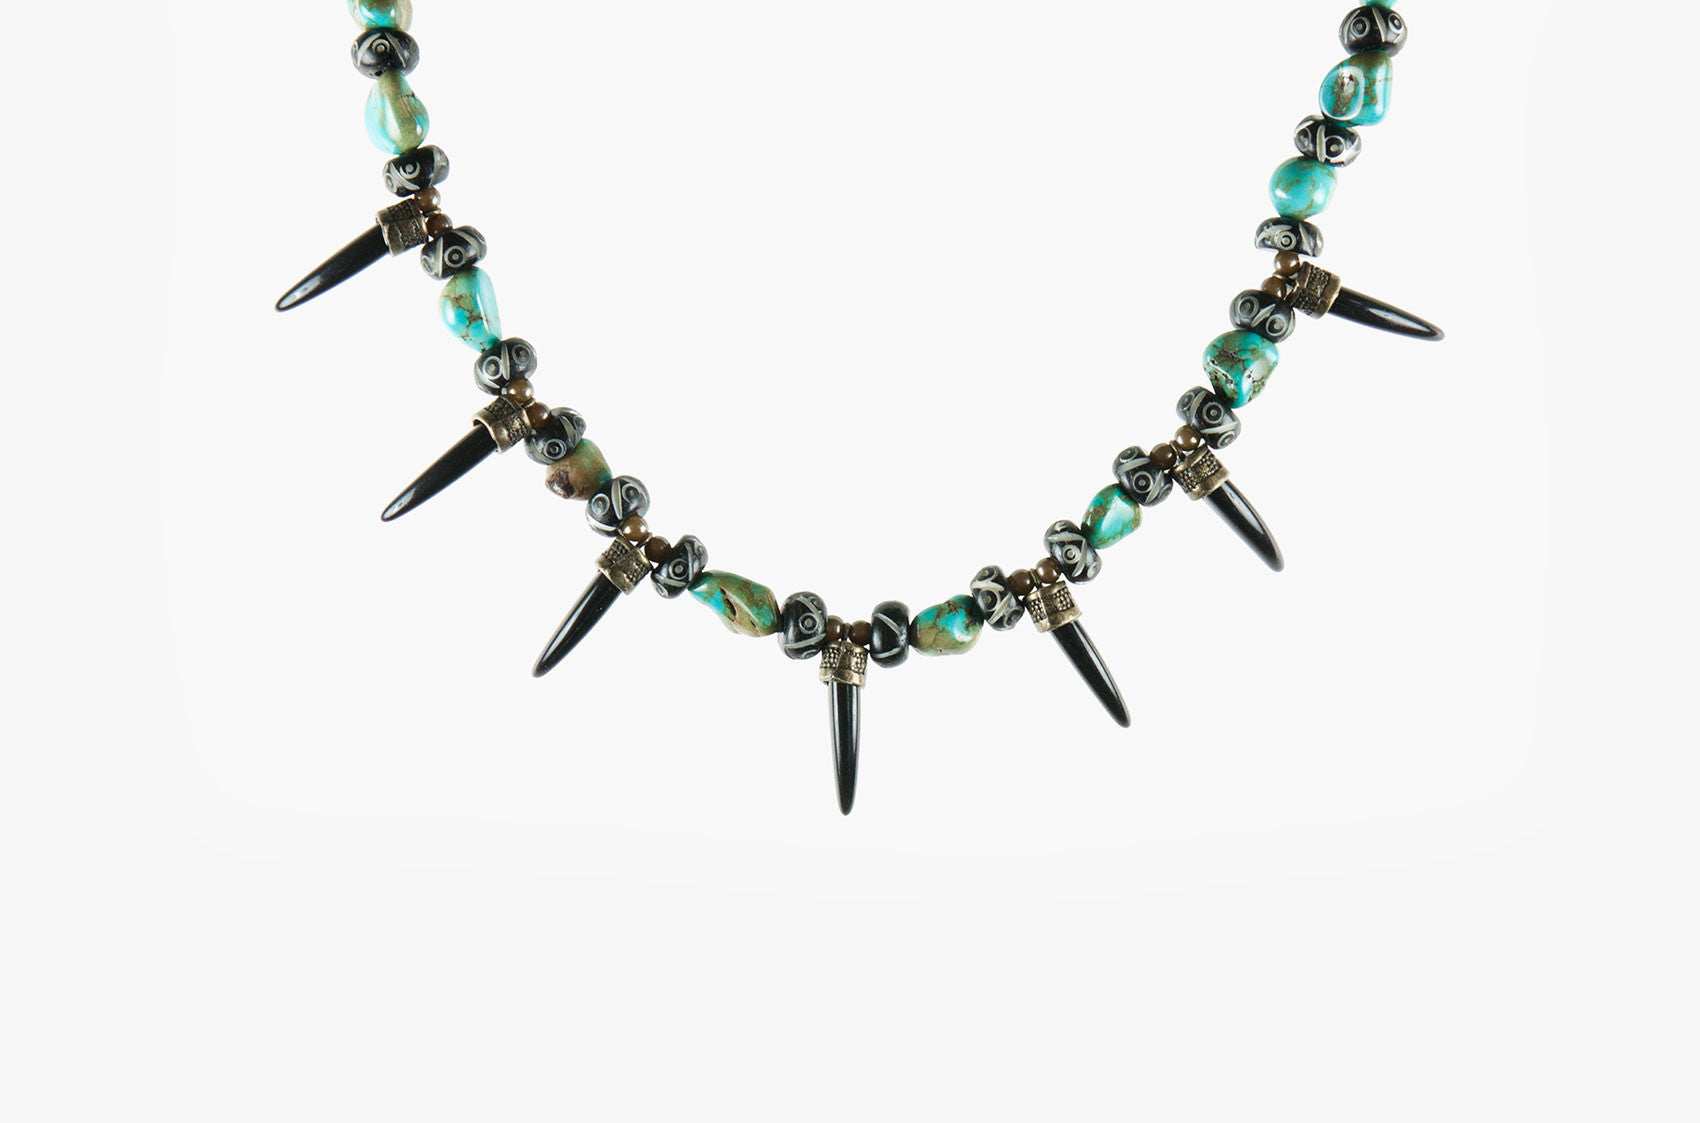 Turquoise and Teeth. Fierce tribal necklace with bone